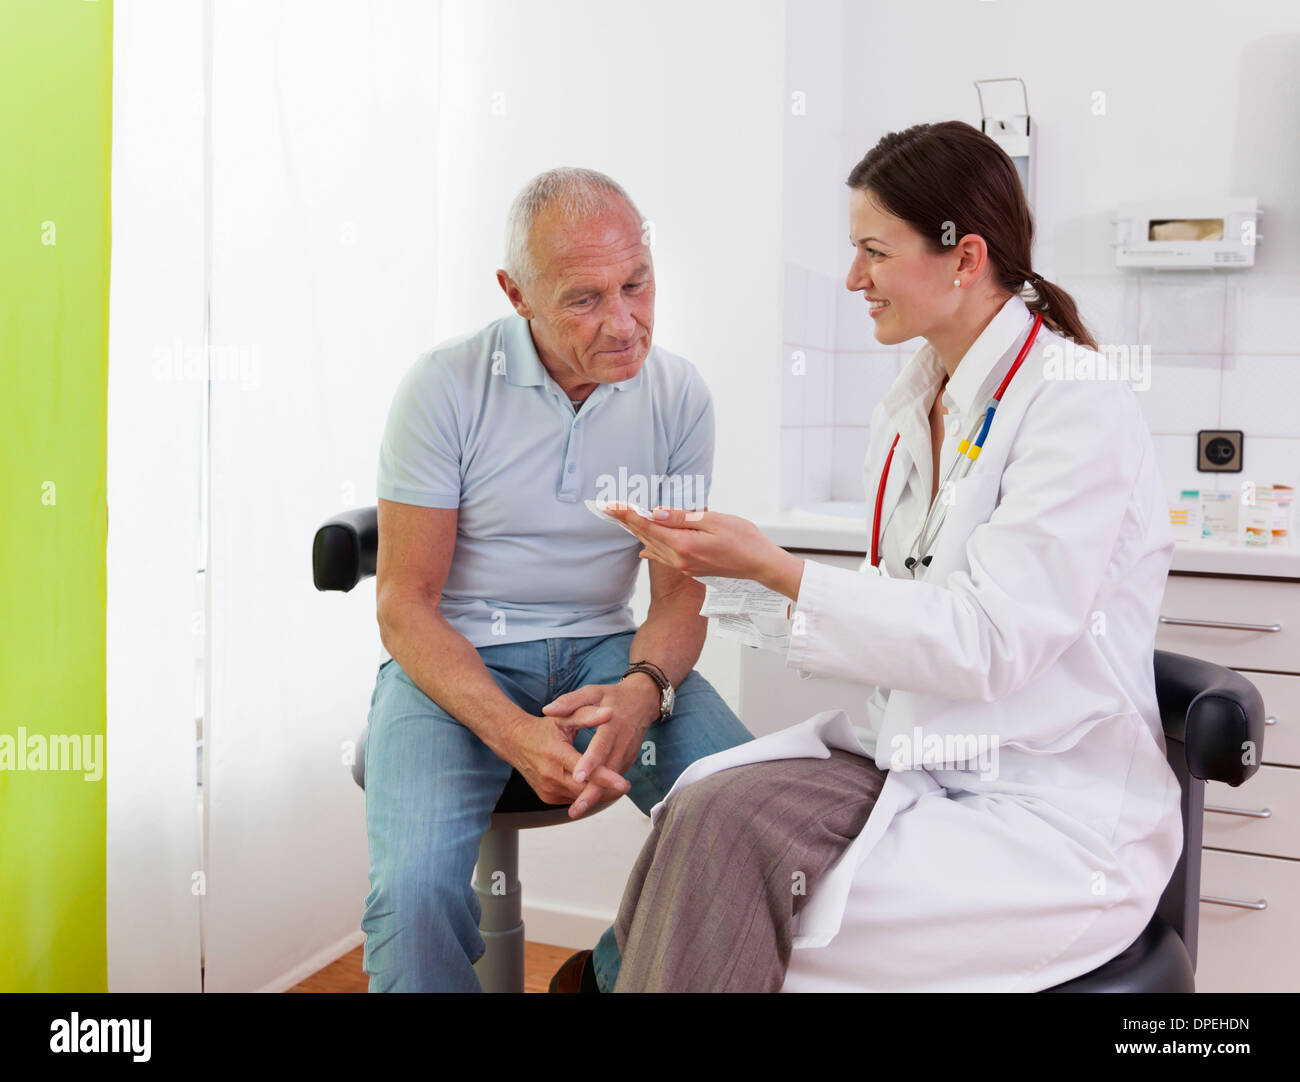 Female doctor talking to senior male patient - Stock Image